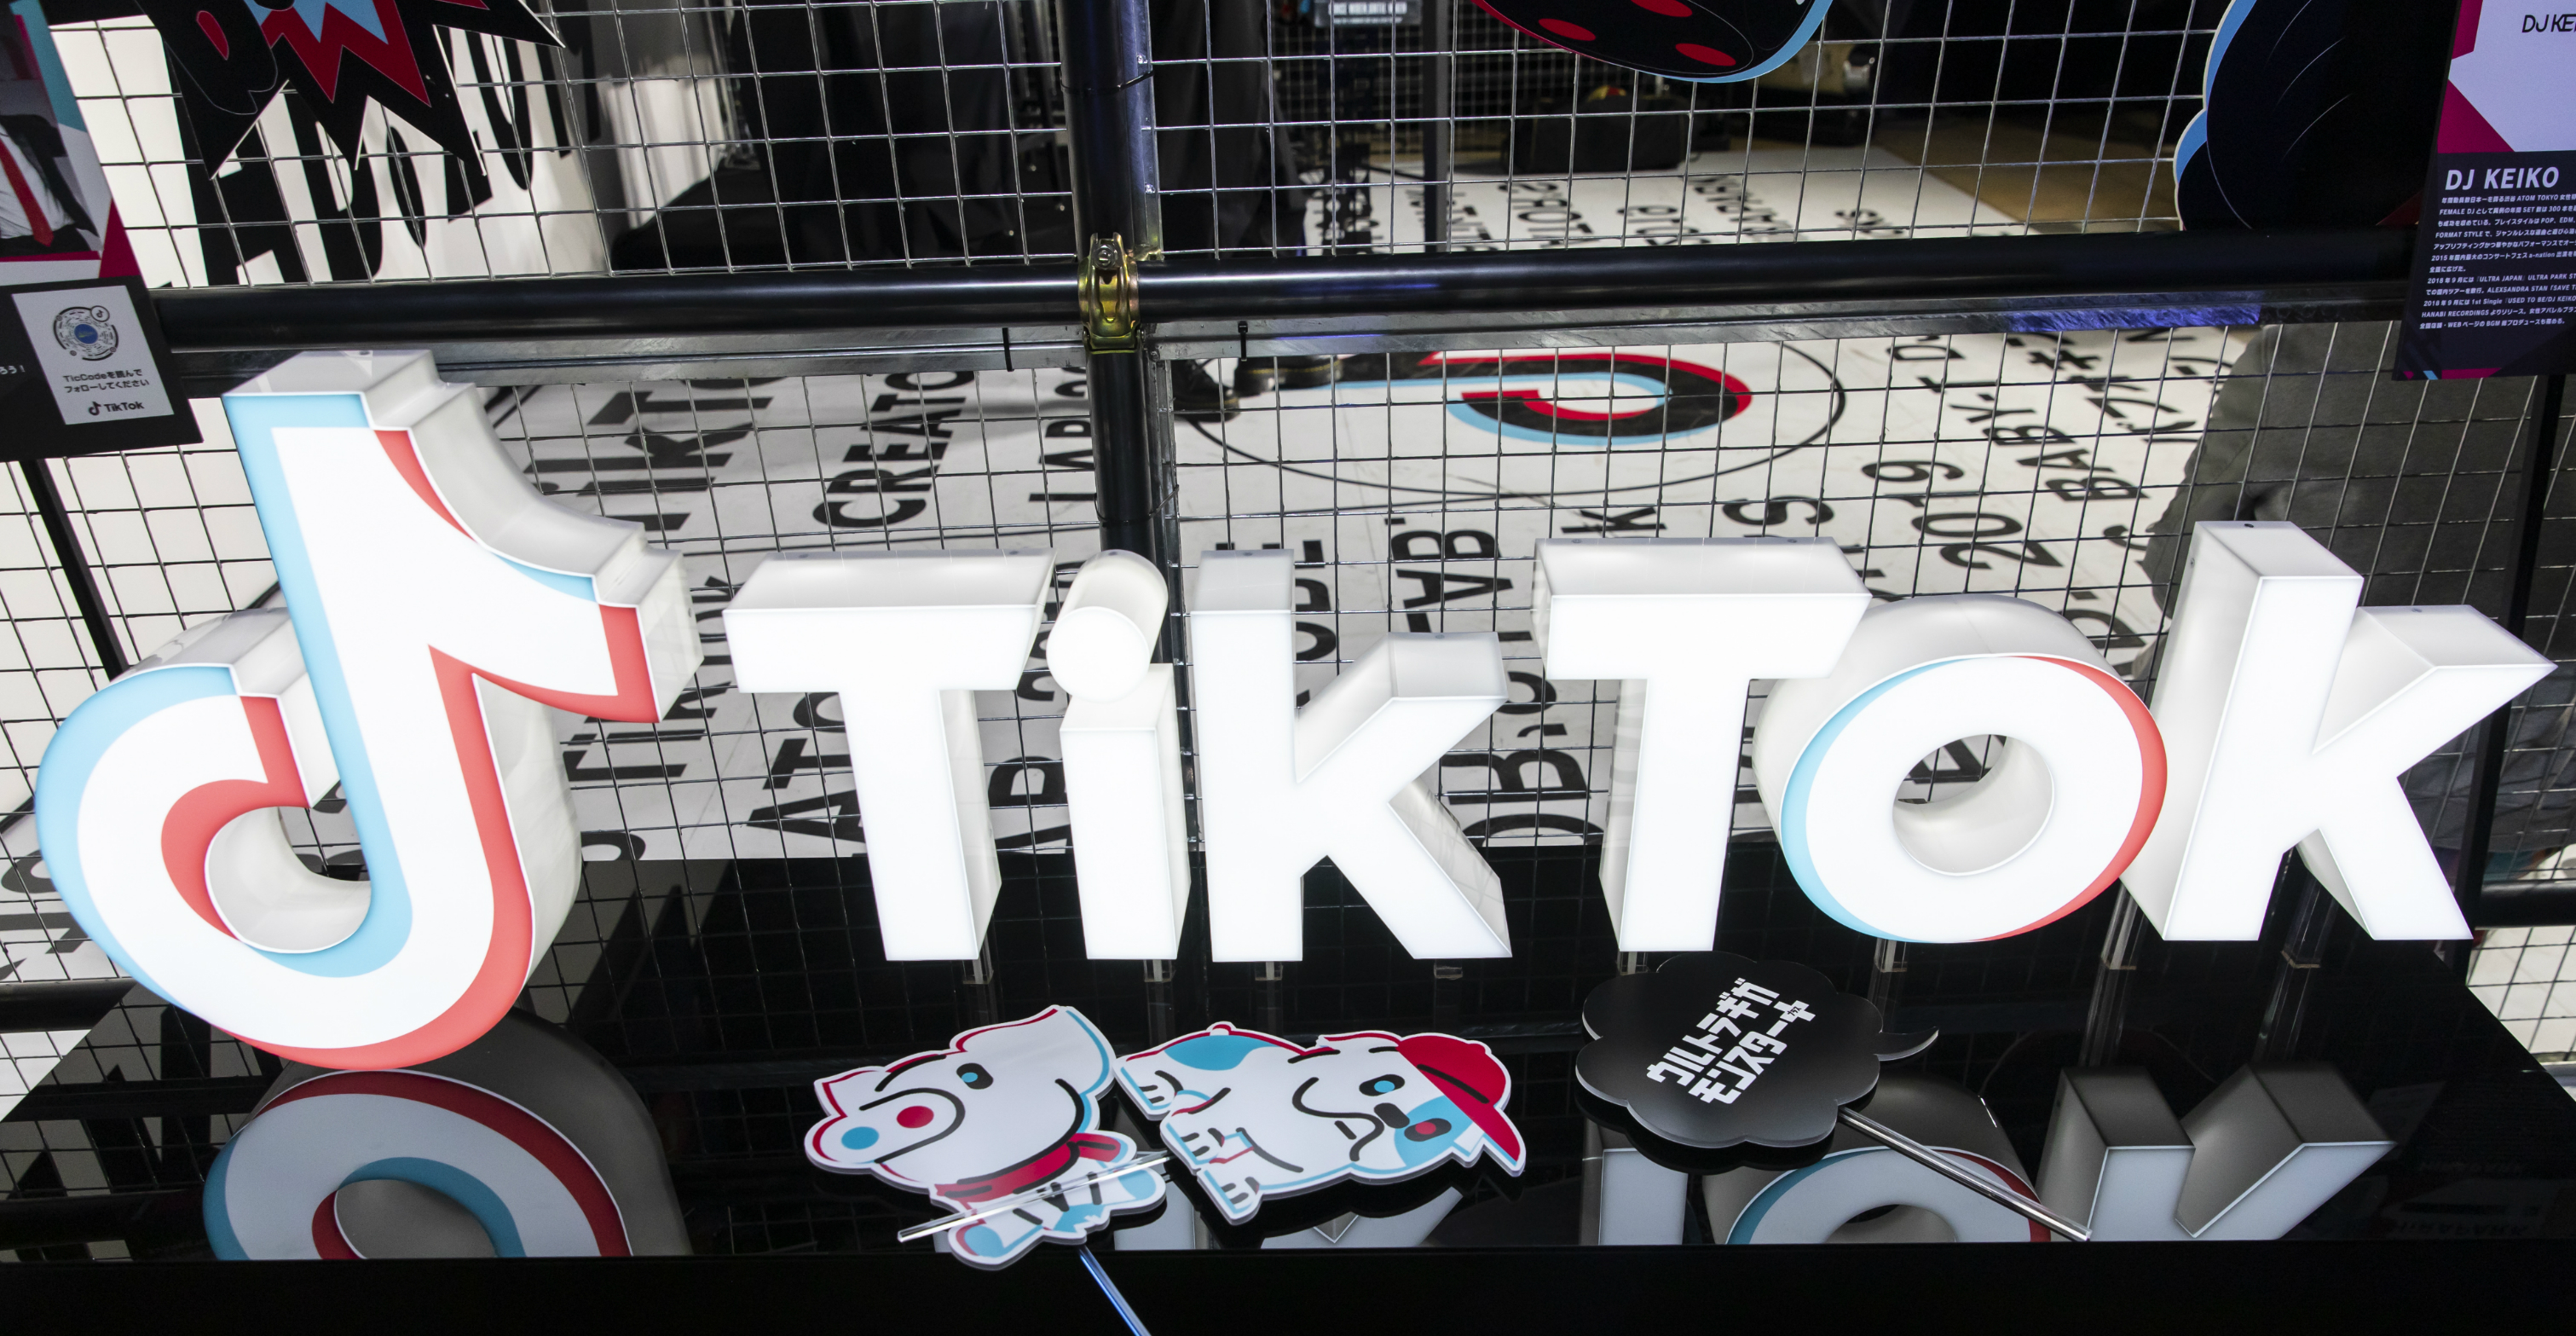 About 60 percent of TikTok's 26.5 million monthly active users in the United States are between the ages of 16 and 24. Photo: Bloomberg